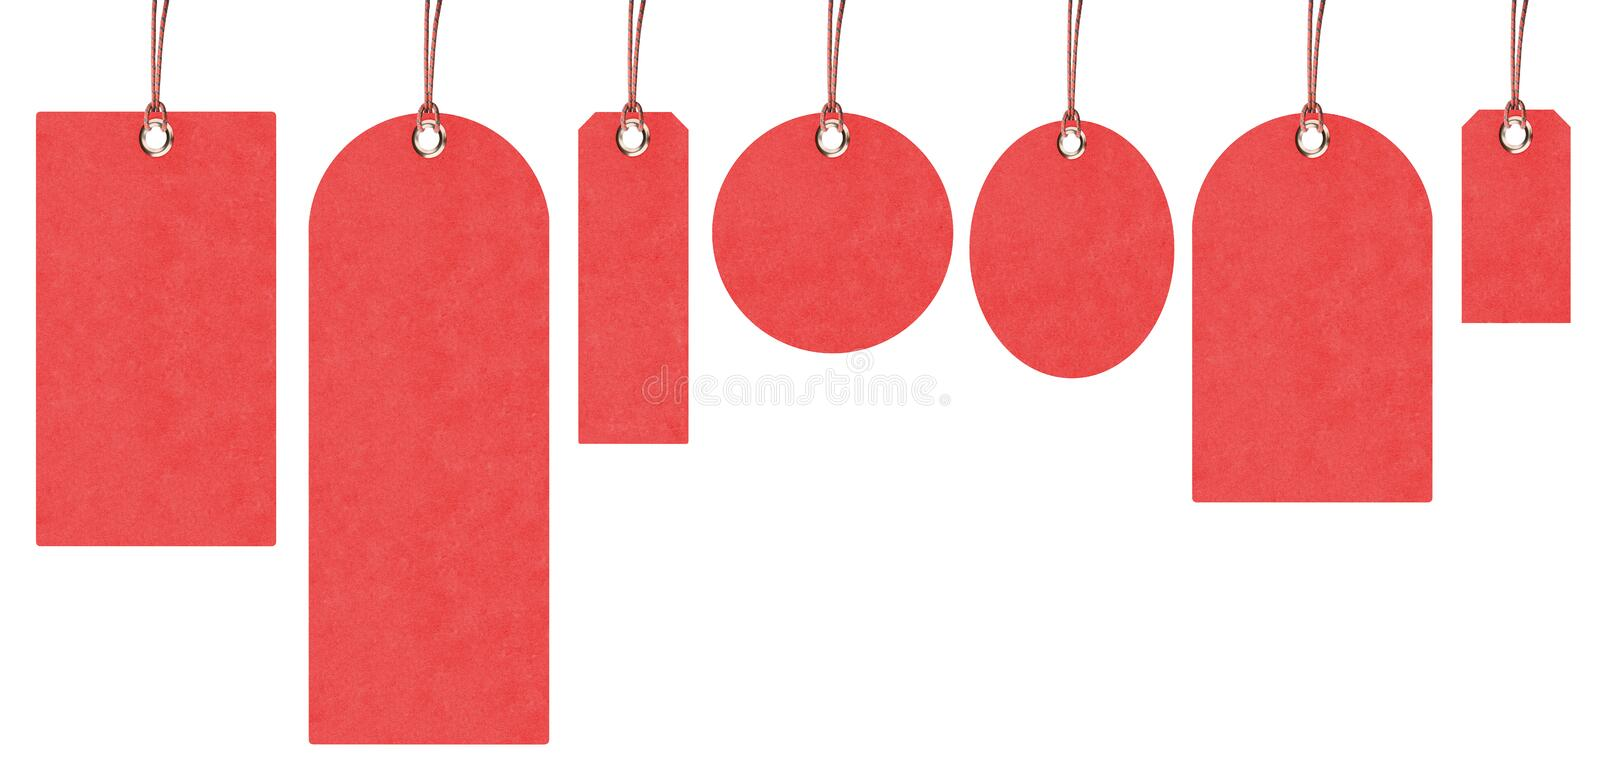 Red tags. Isolated on white background royalty free stock photography